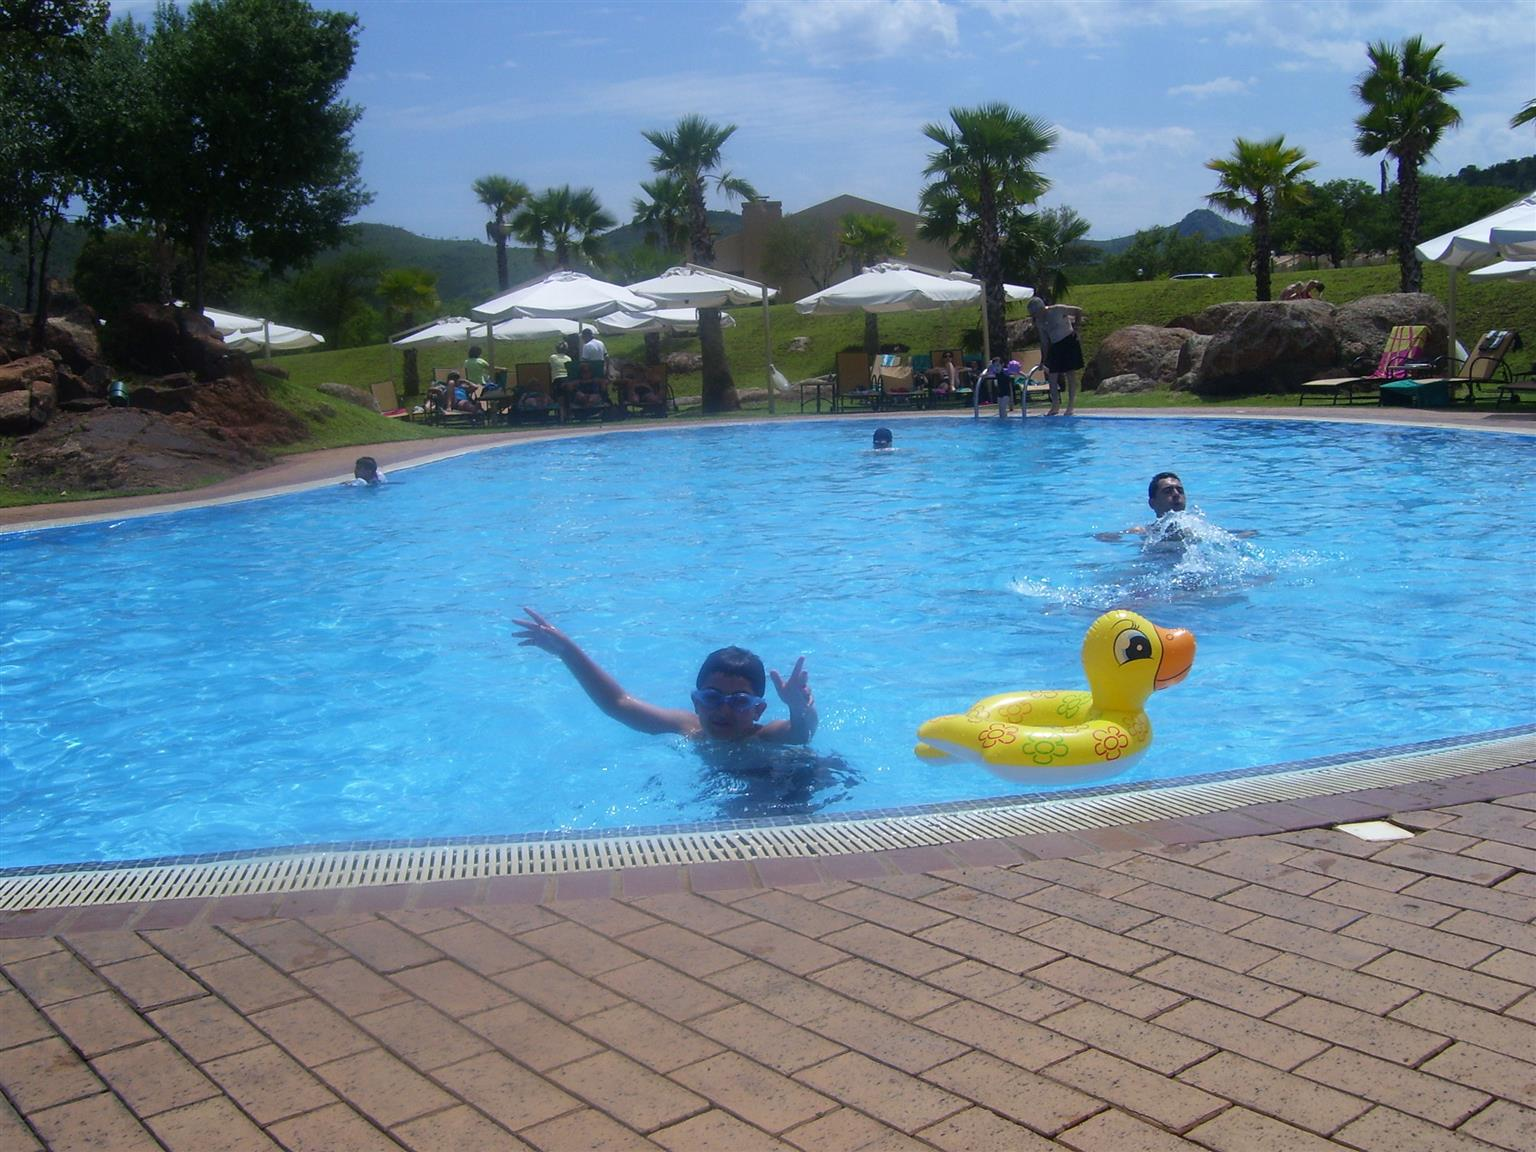 VACATION CLUB SUN CITY 3RD TO 10TH AND 7TH TO 14TH